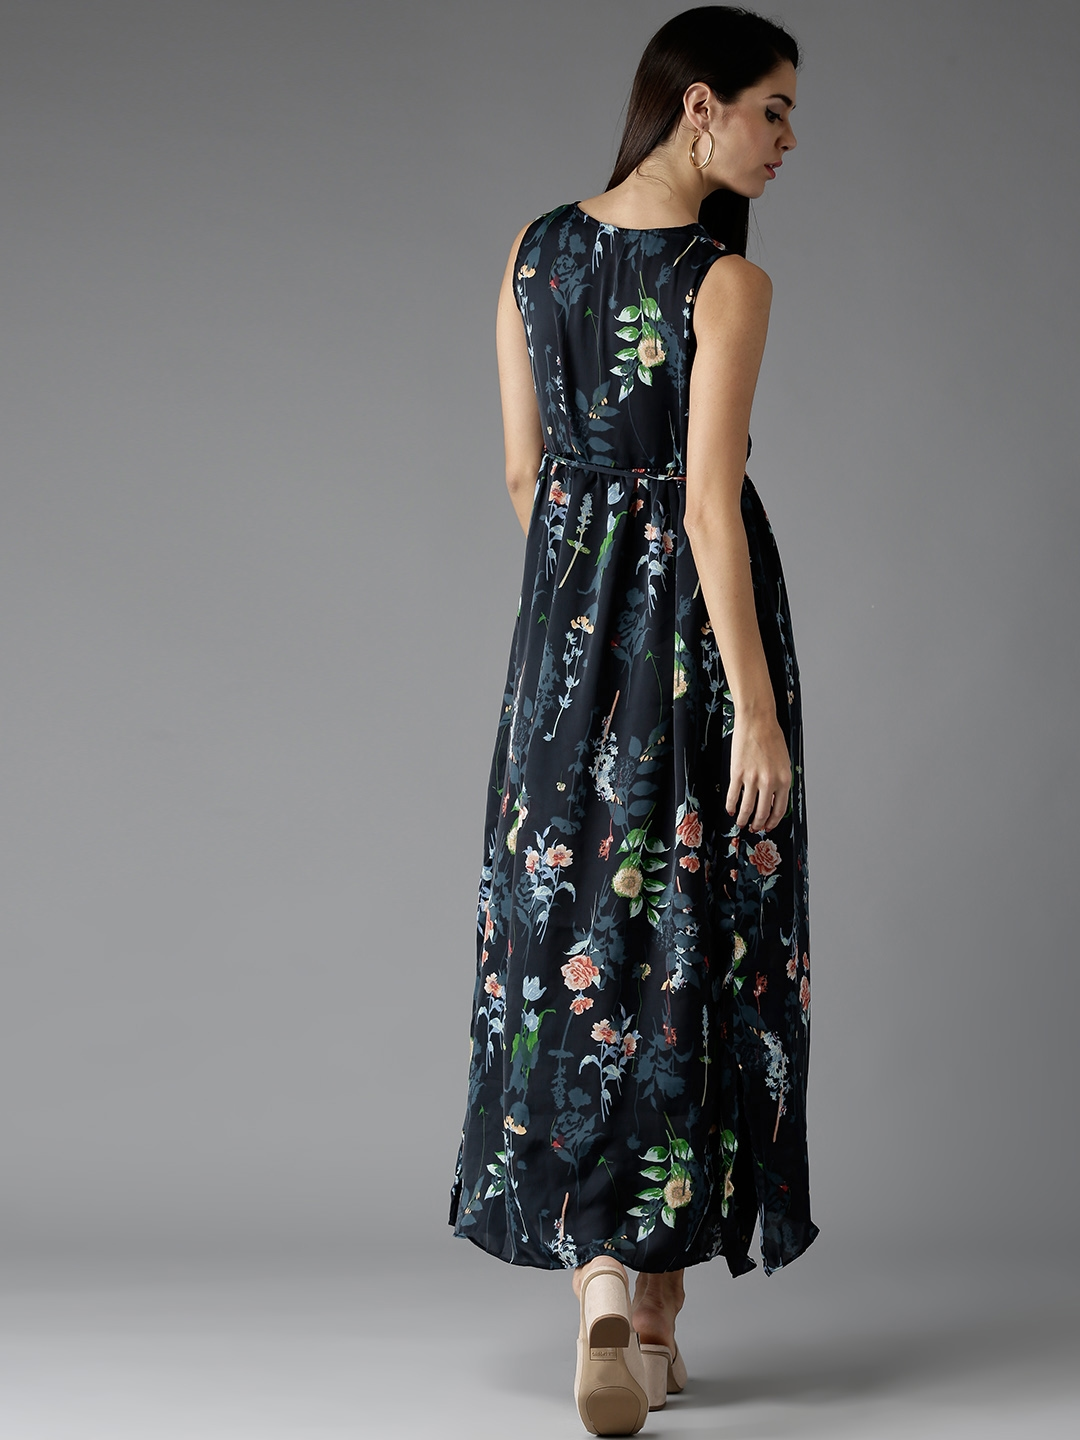 24669b0f89a Buy HERE NOW Women Navy Printed Maxi Dress - Dresses for Women ...